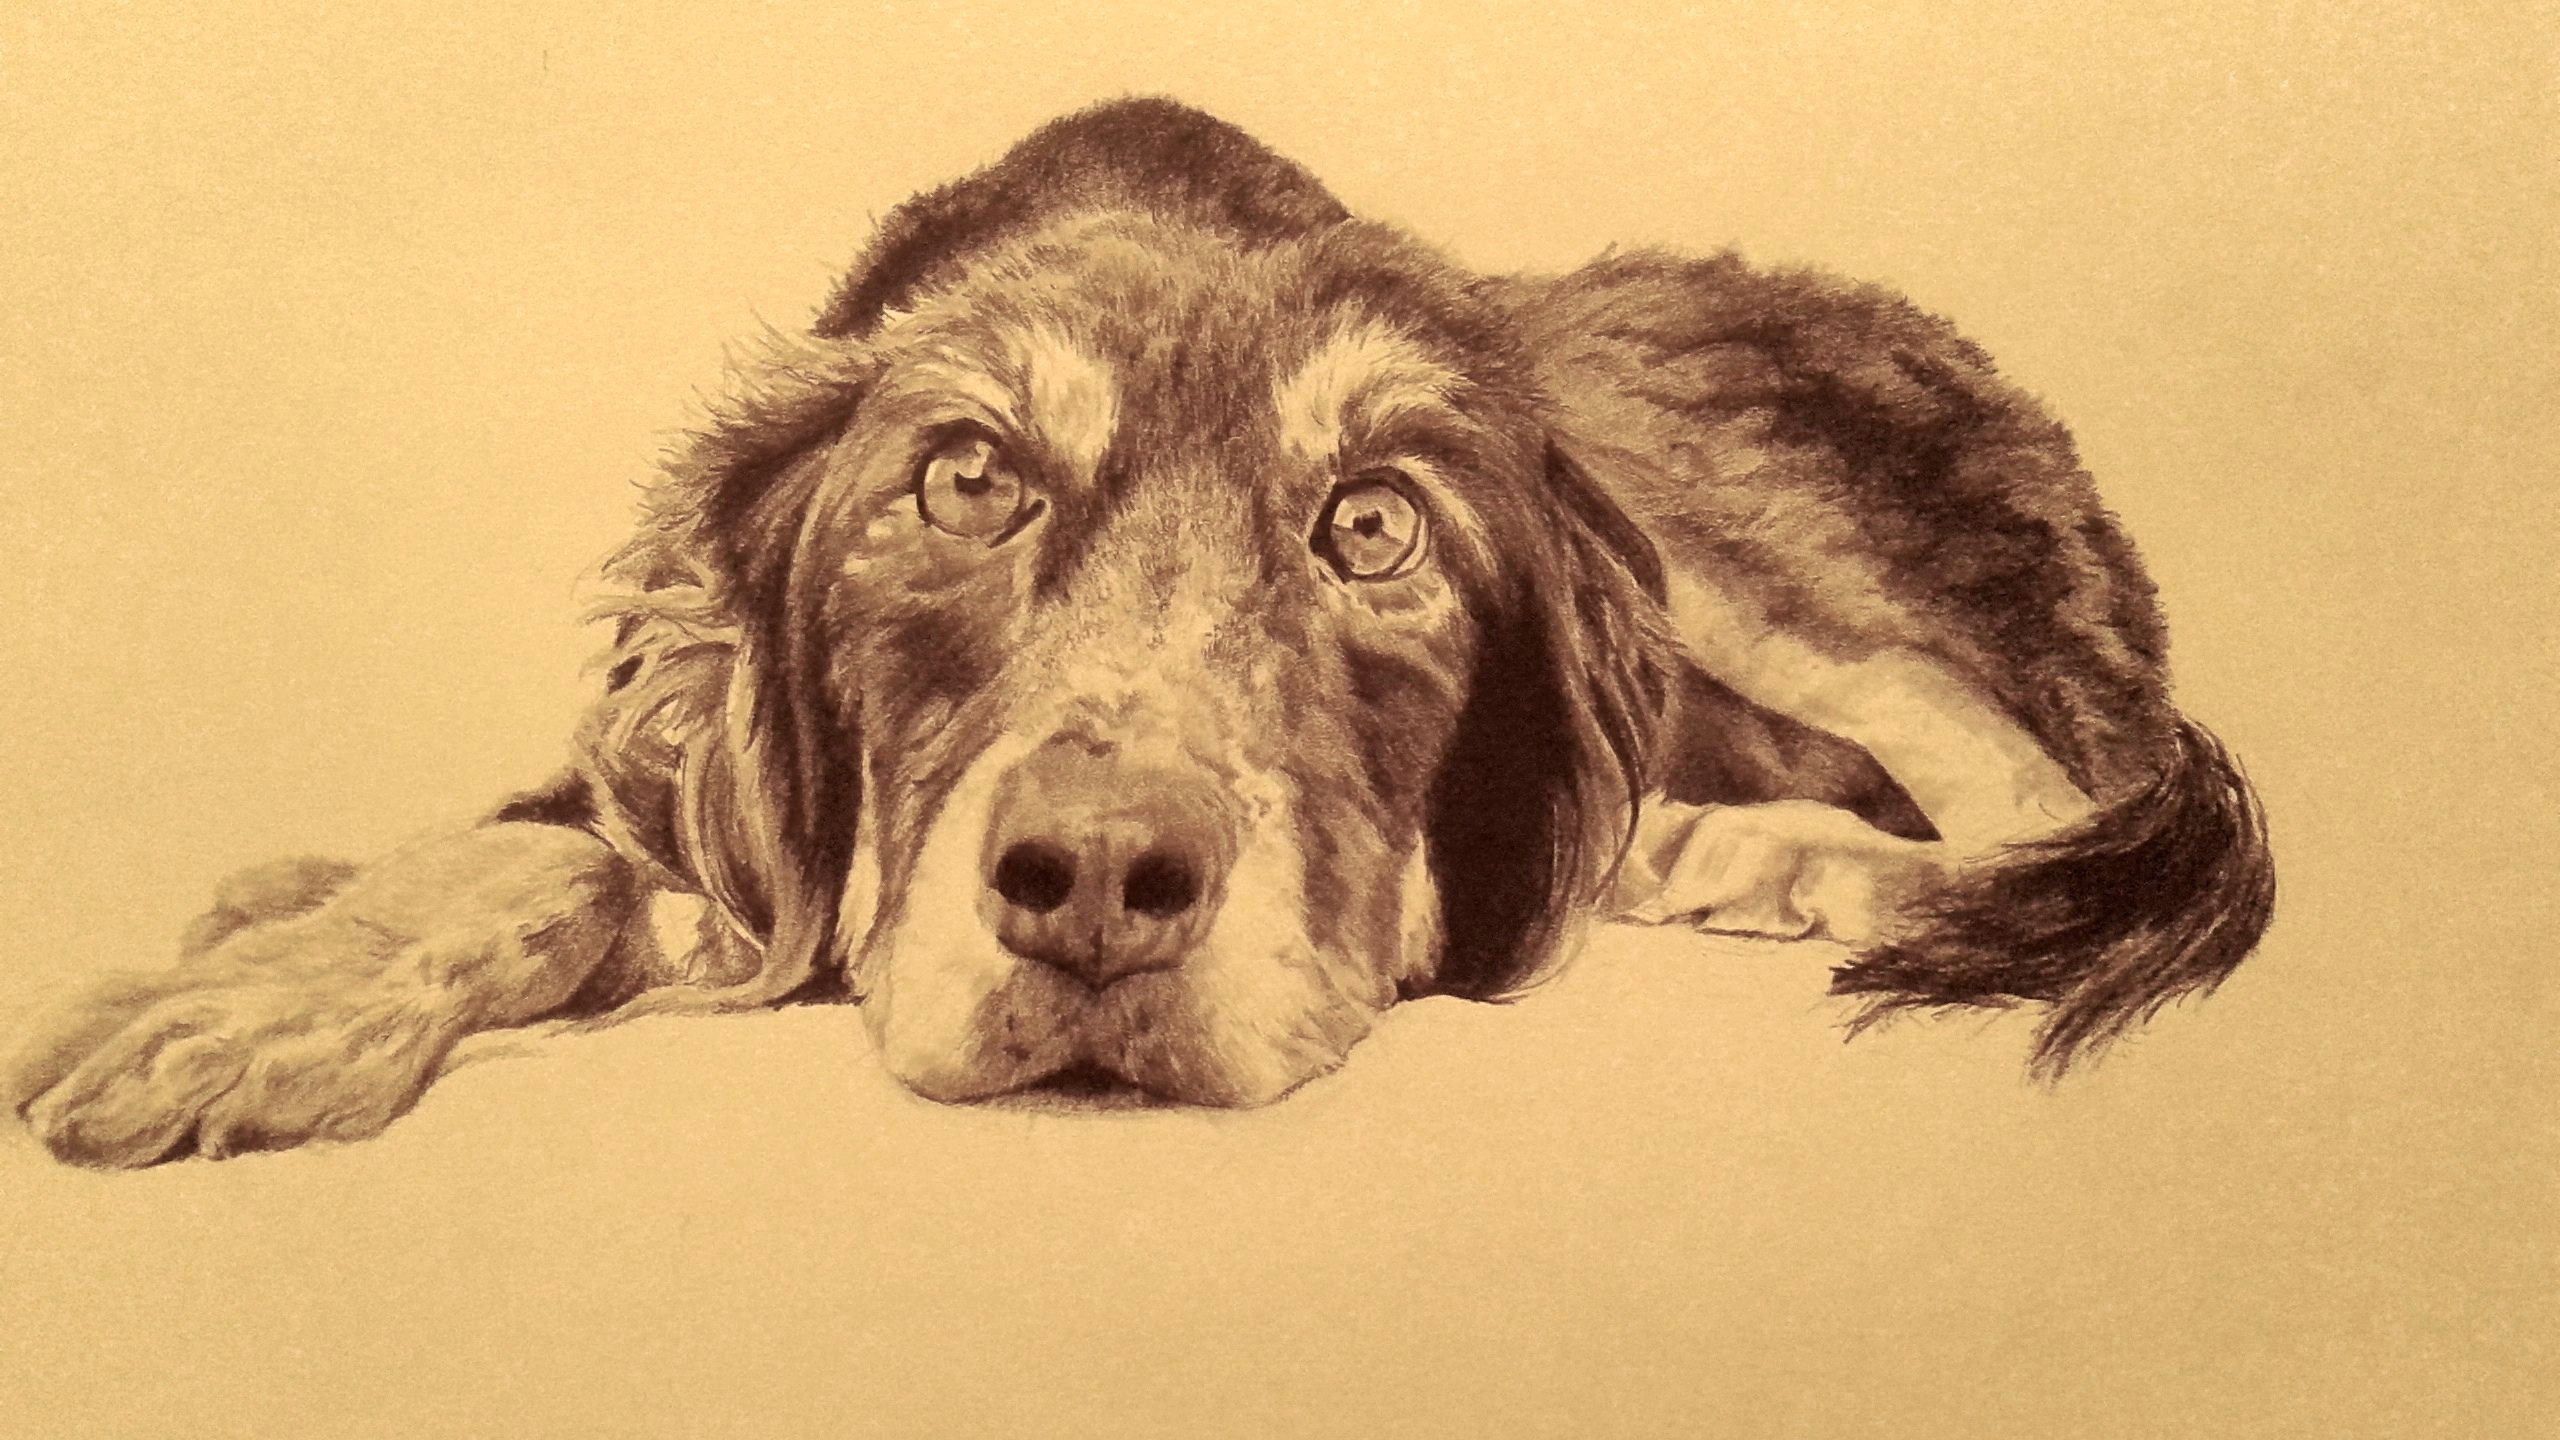 drawing of my friend s dog graphite art pencil drawings